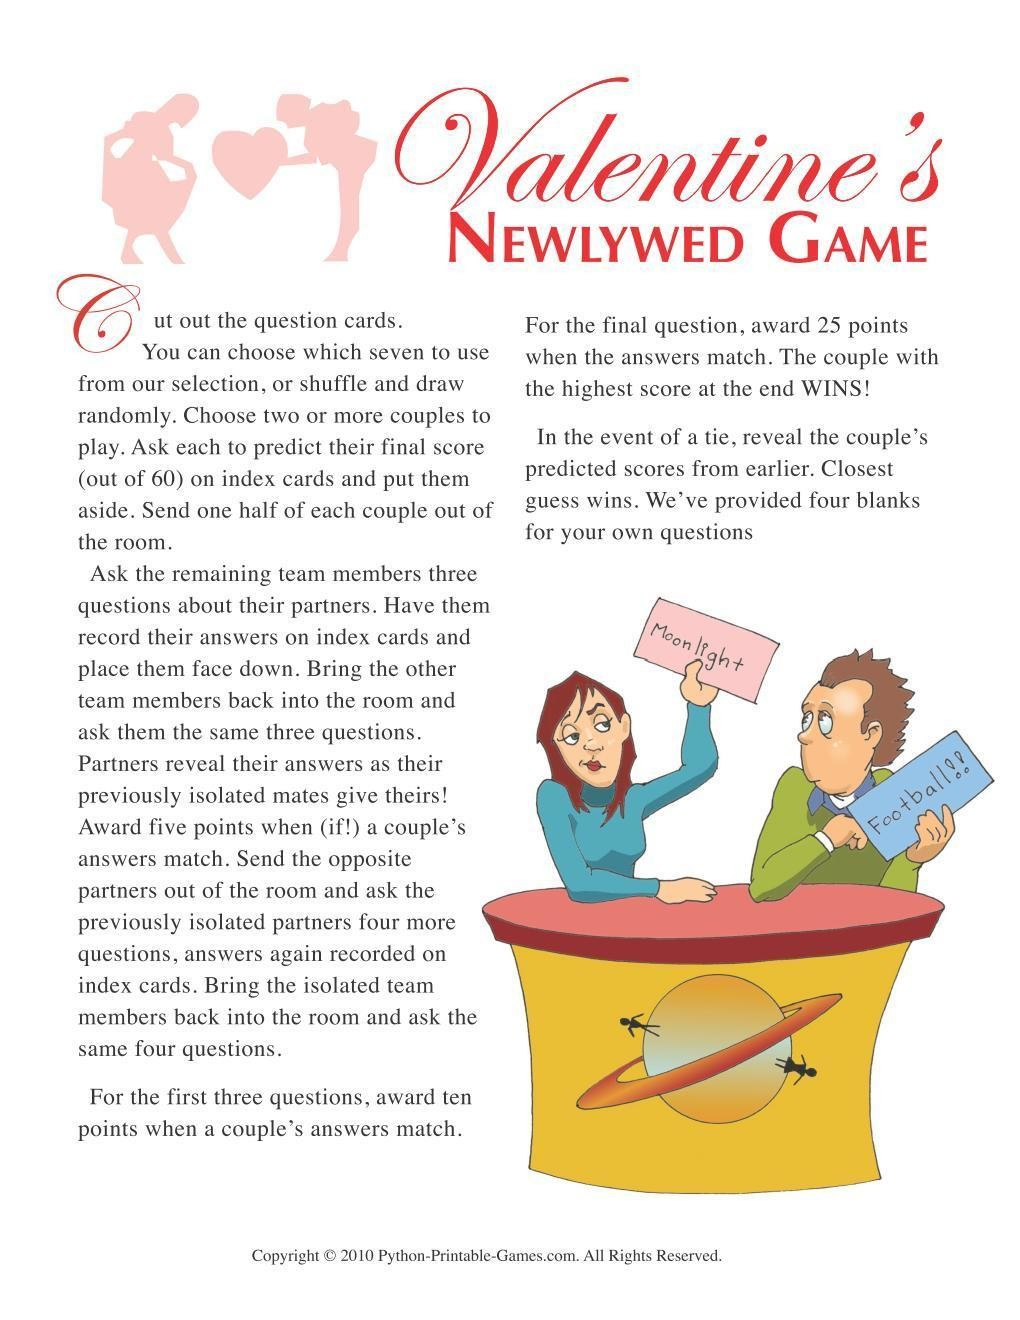 Valentine's Day: Newlywed Questions Game